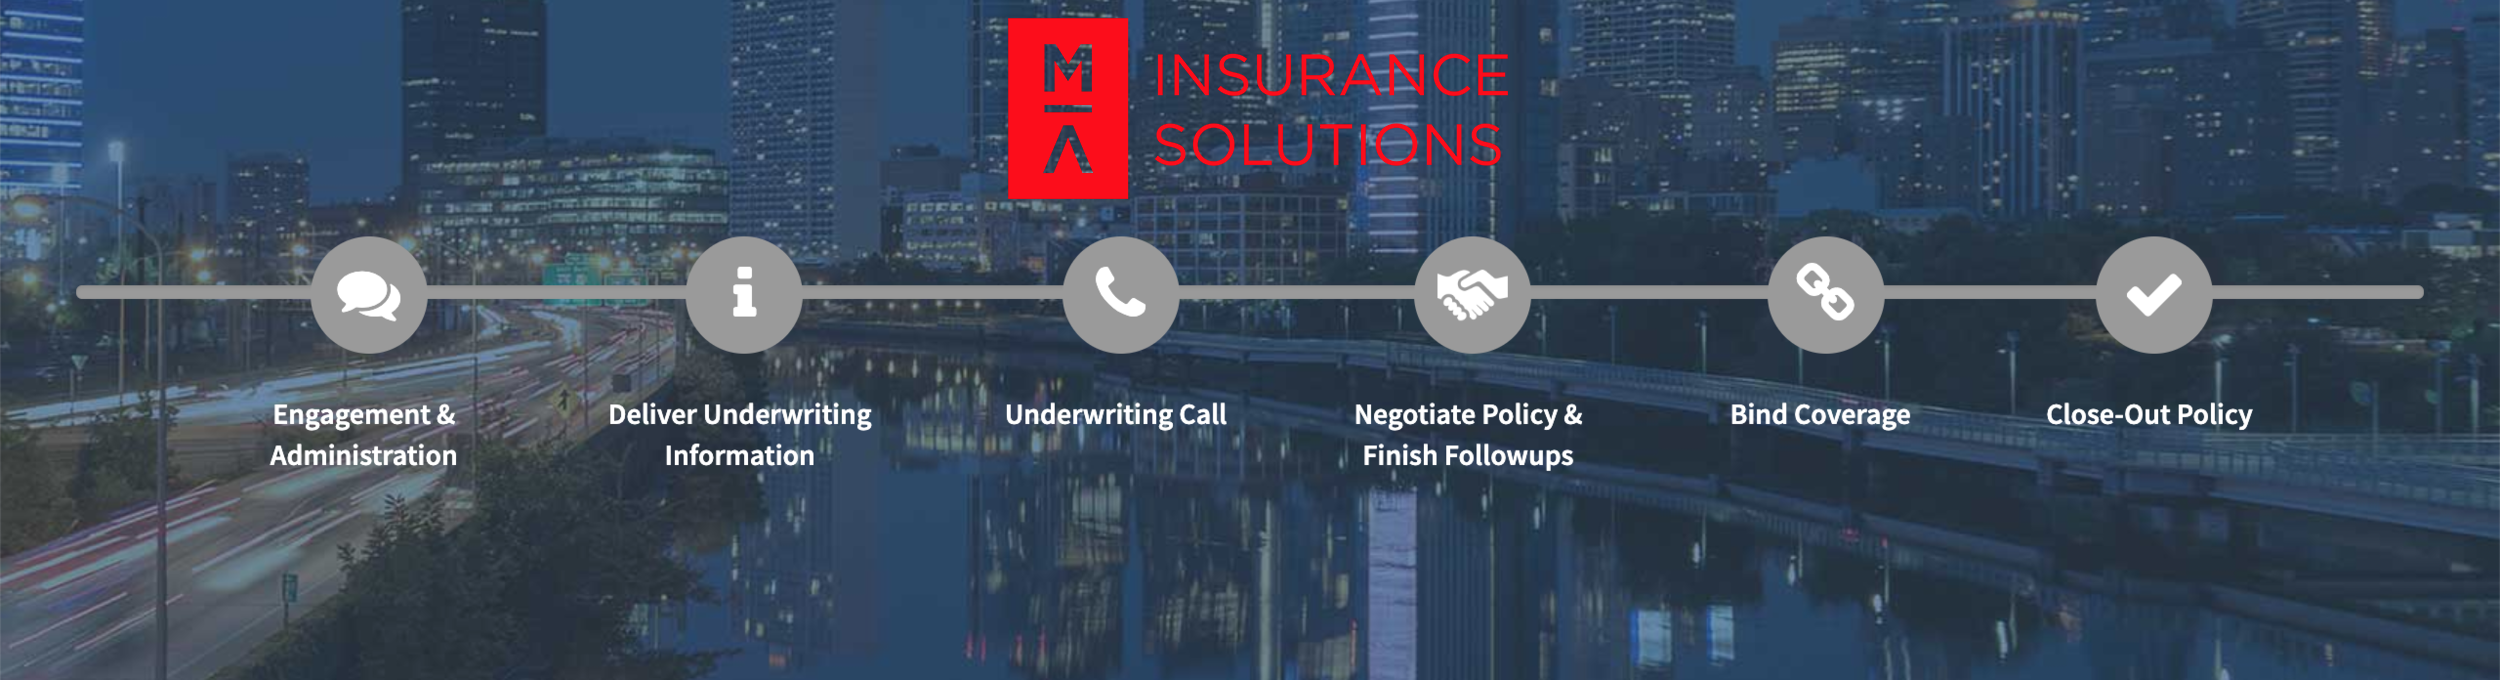 XenoDATA Architects & Builds Peer To Peer Data-Driven Platform for Niche Insurance Placement Services Firm